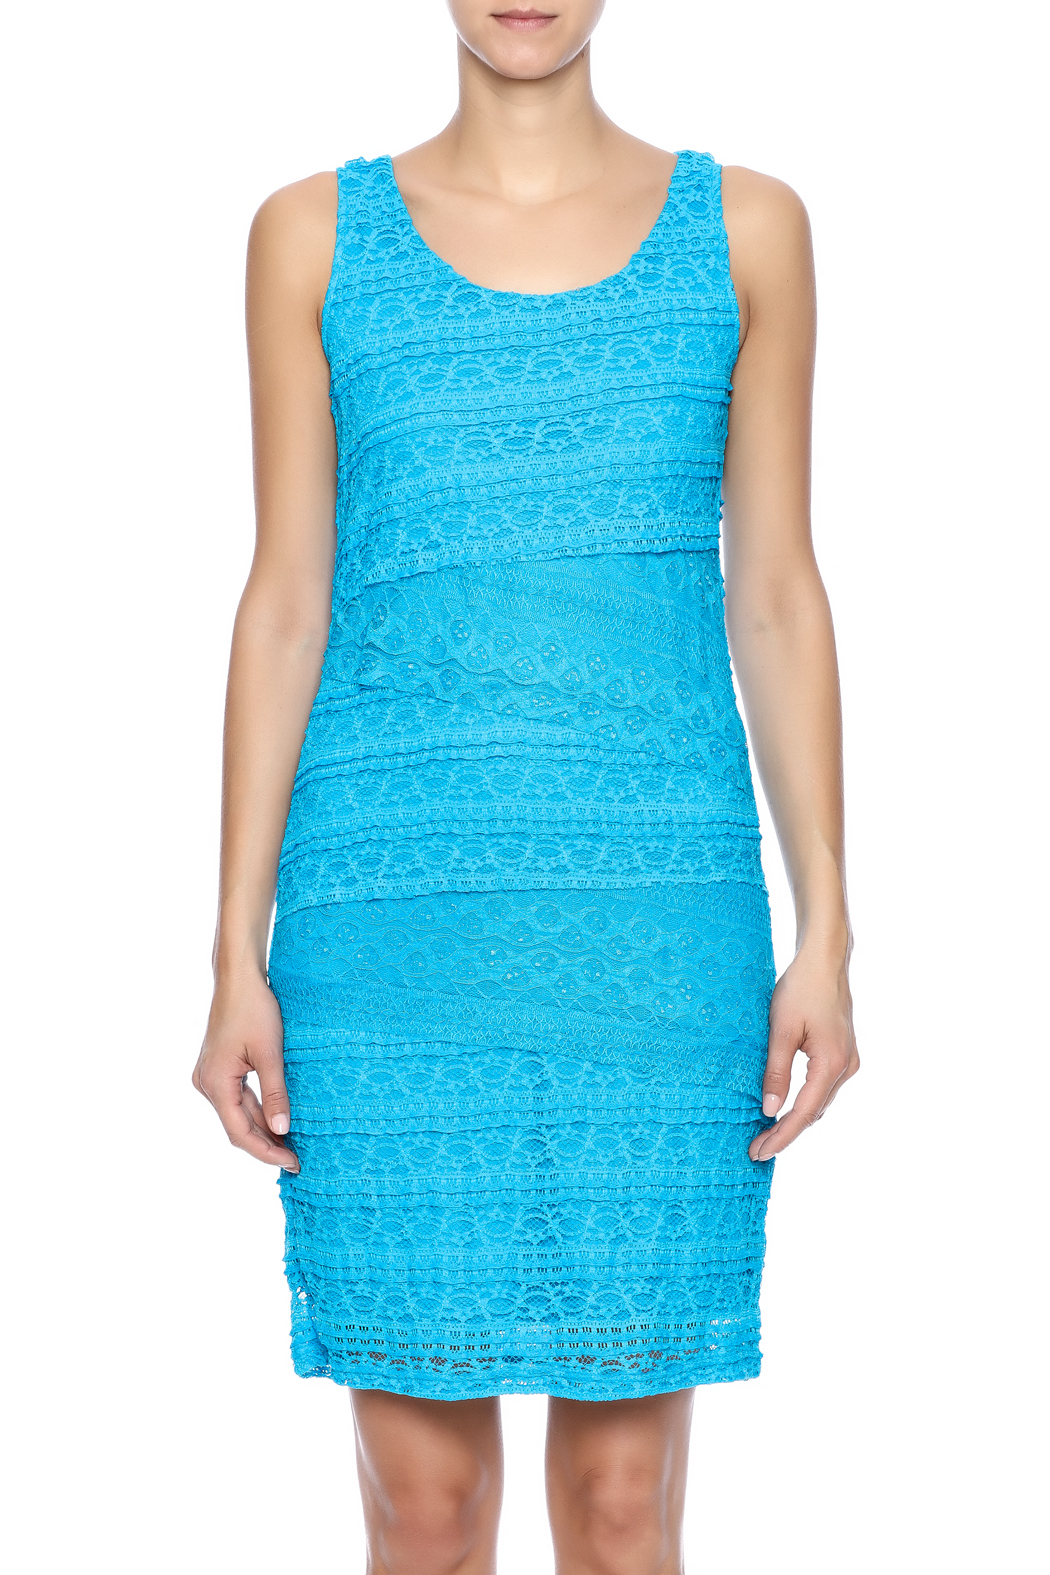 Michael Edwards Turquoise Lace Dress - Side Cropped Image